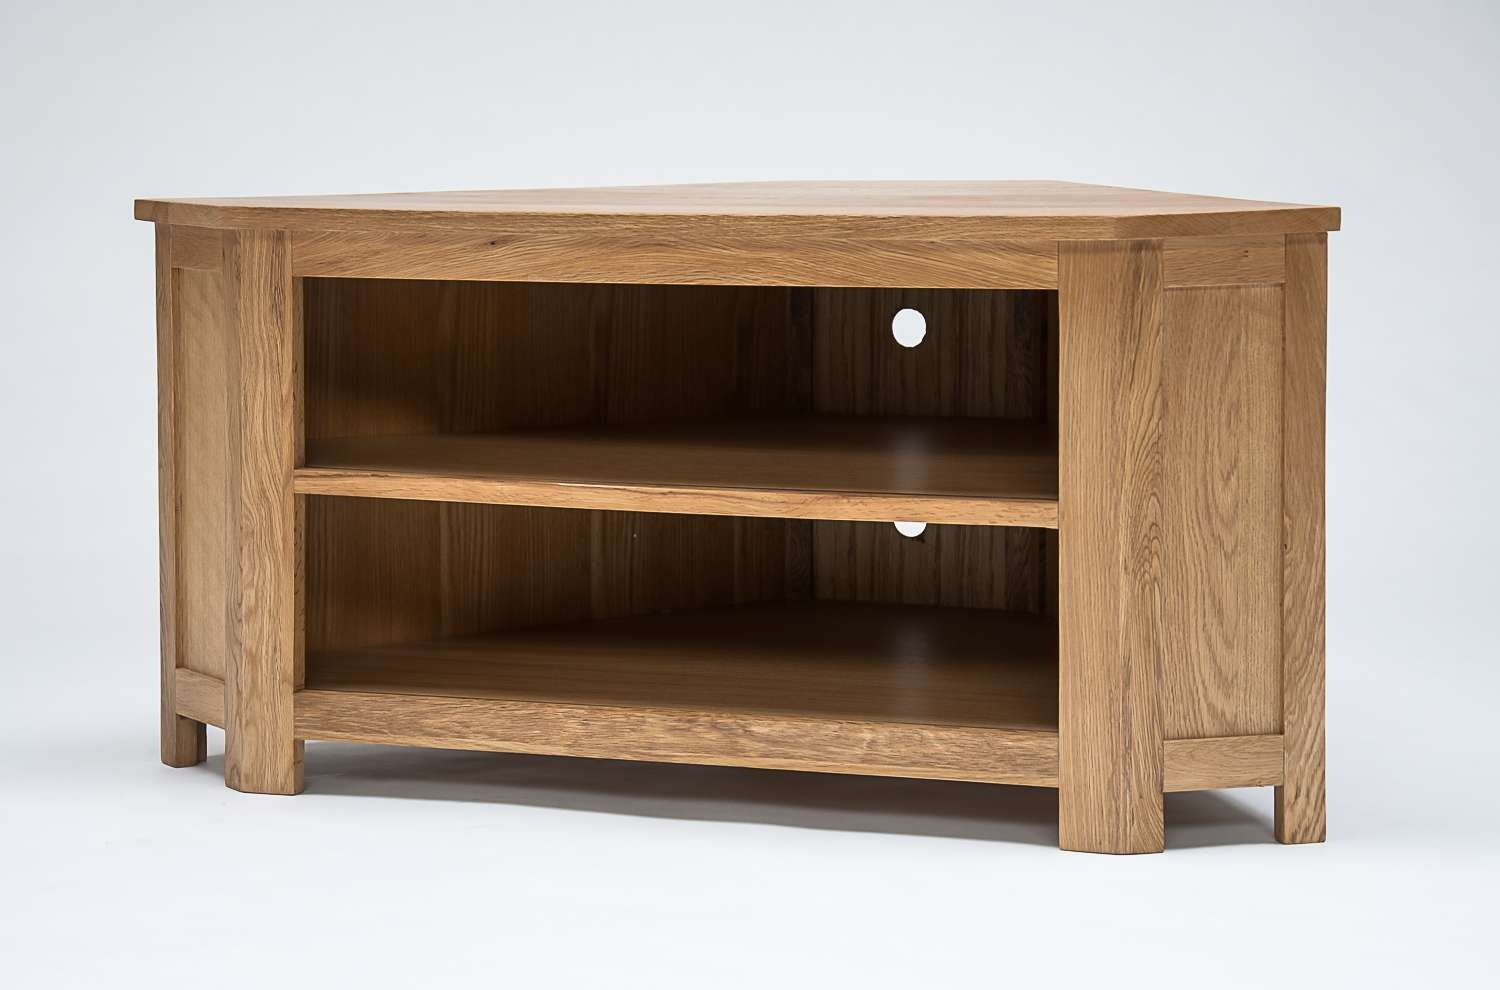 Lansdown Oak Low Corner Tv Cabinet | Oak Furniture Solutions Pertaining To Corner Tv Cabinets (View 13 of 20)